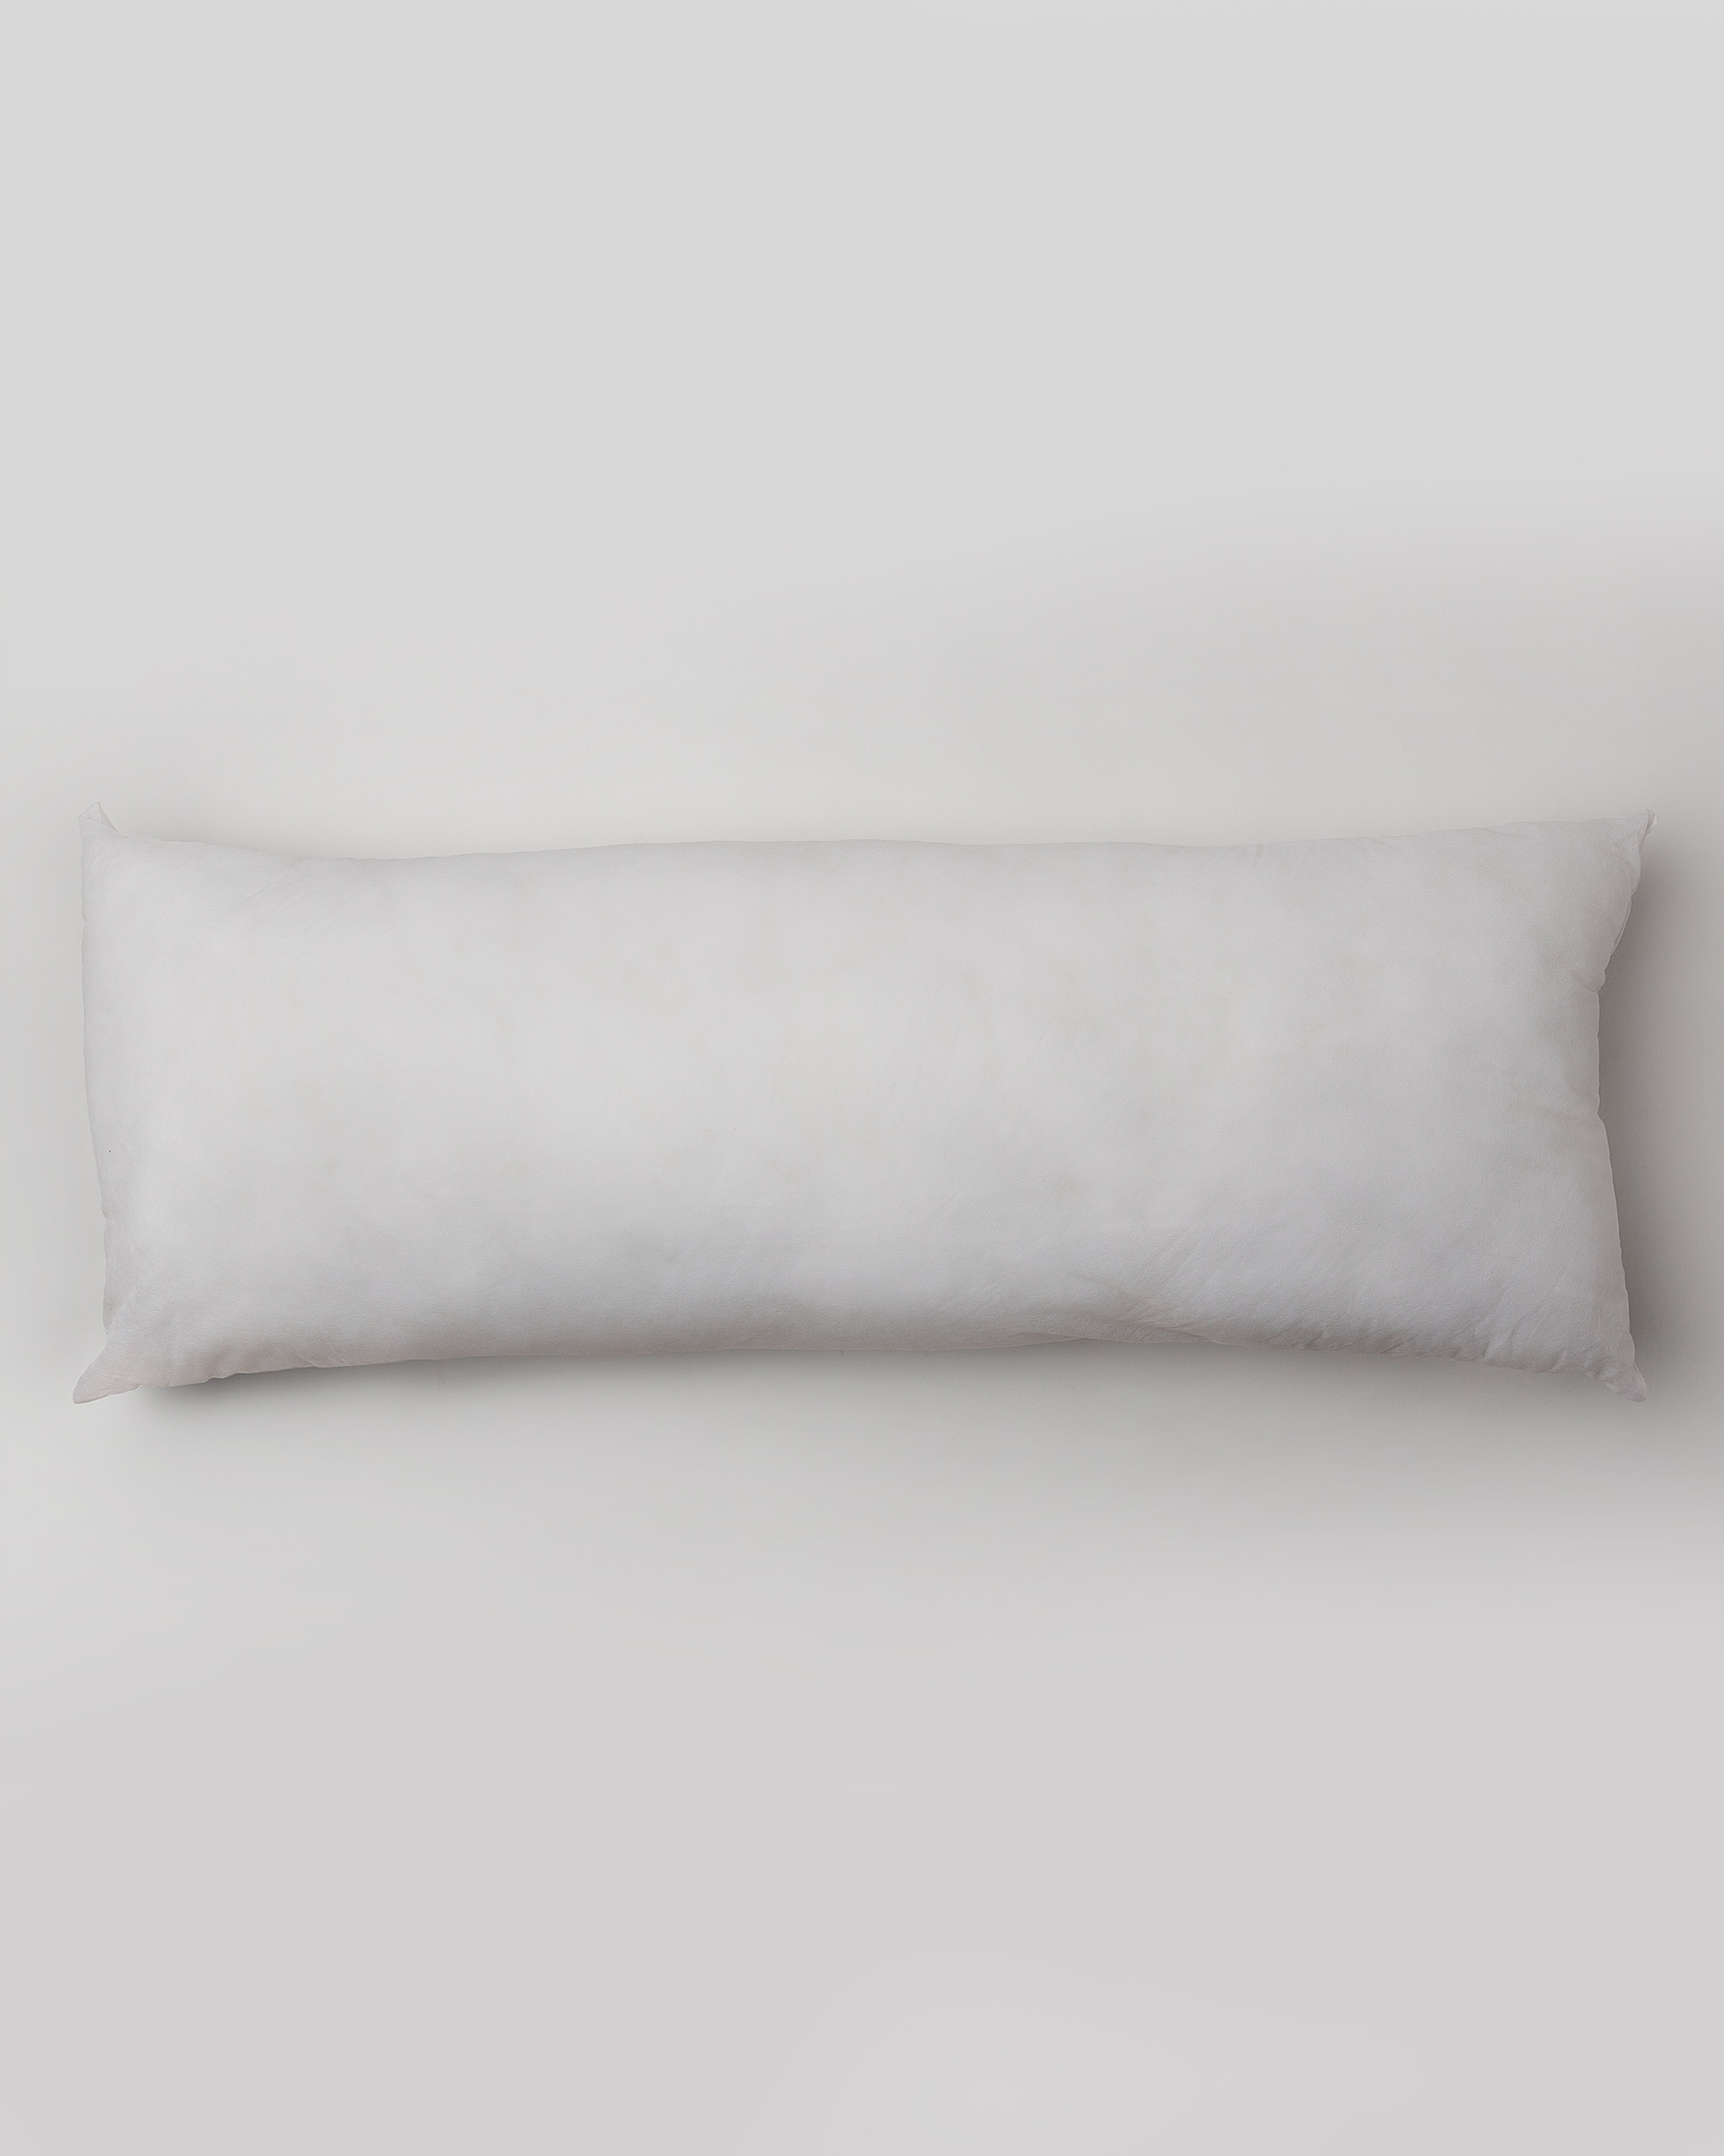 price floor pillow online s buy at filling square ottoman low cotton filler insert pouf cushion